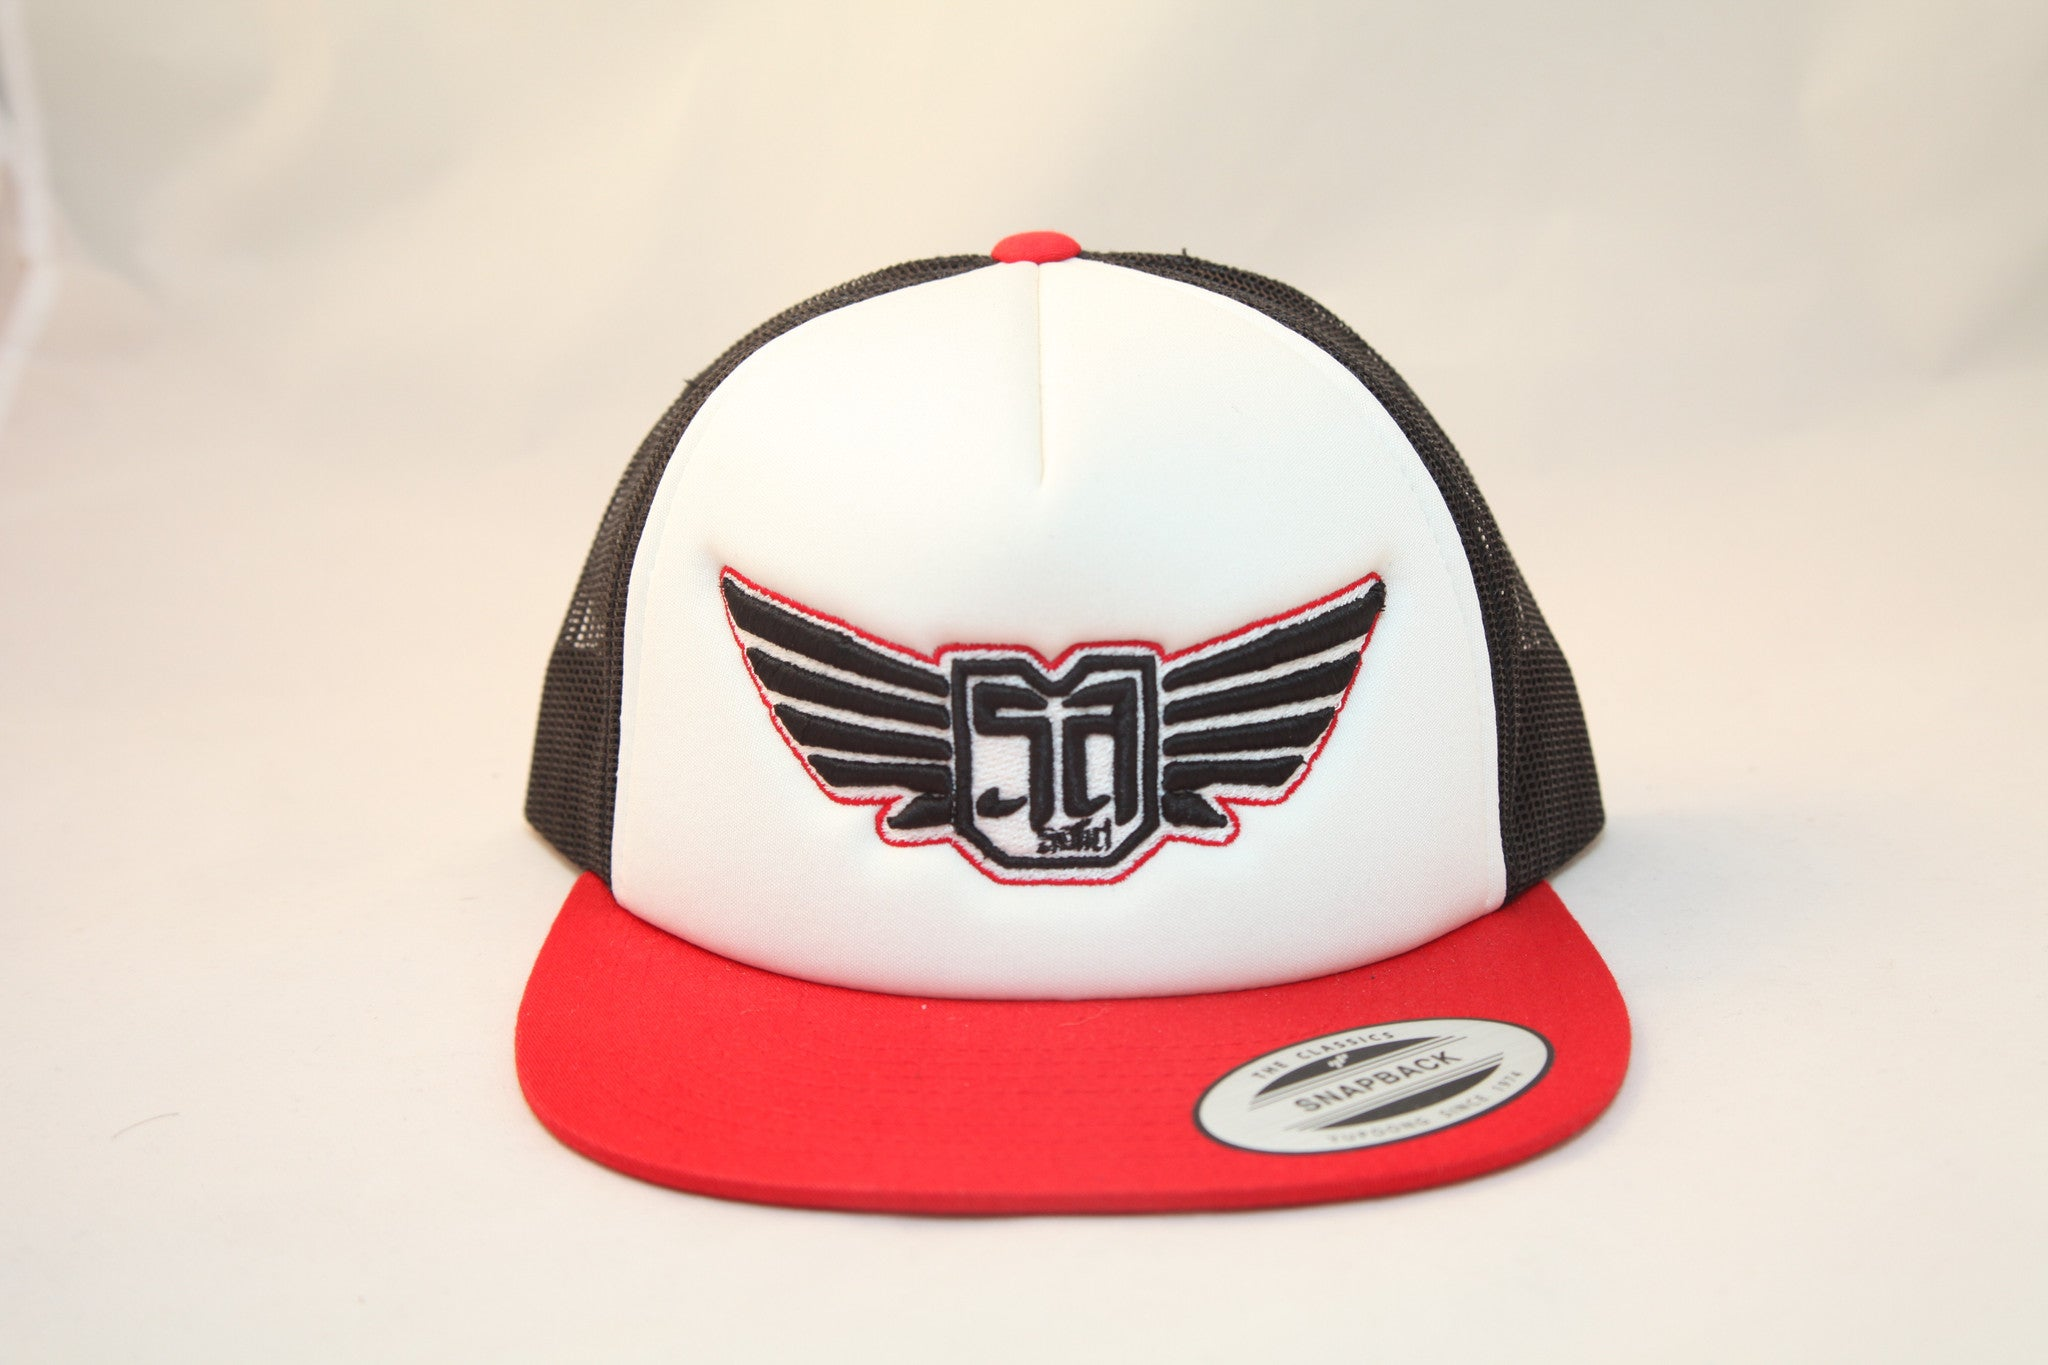 AV8 - TRUCKER - WHITE / BLACK / RED - BLK / WHT / RED LOGO